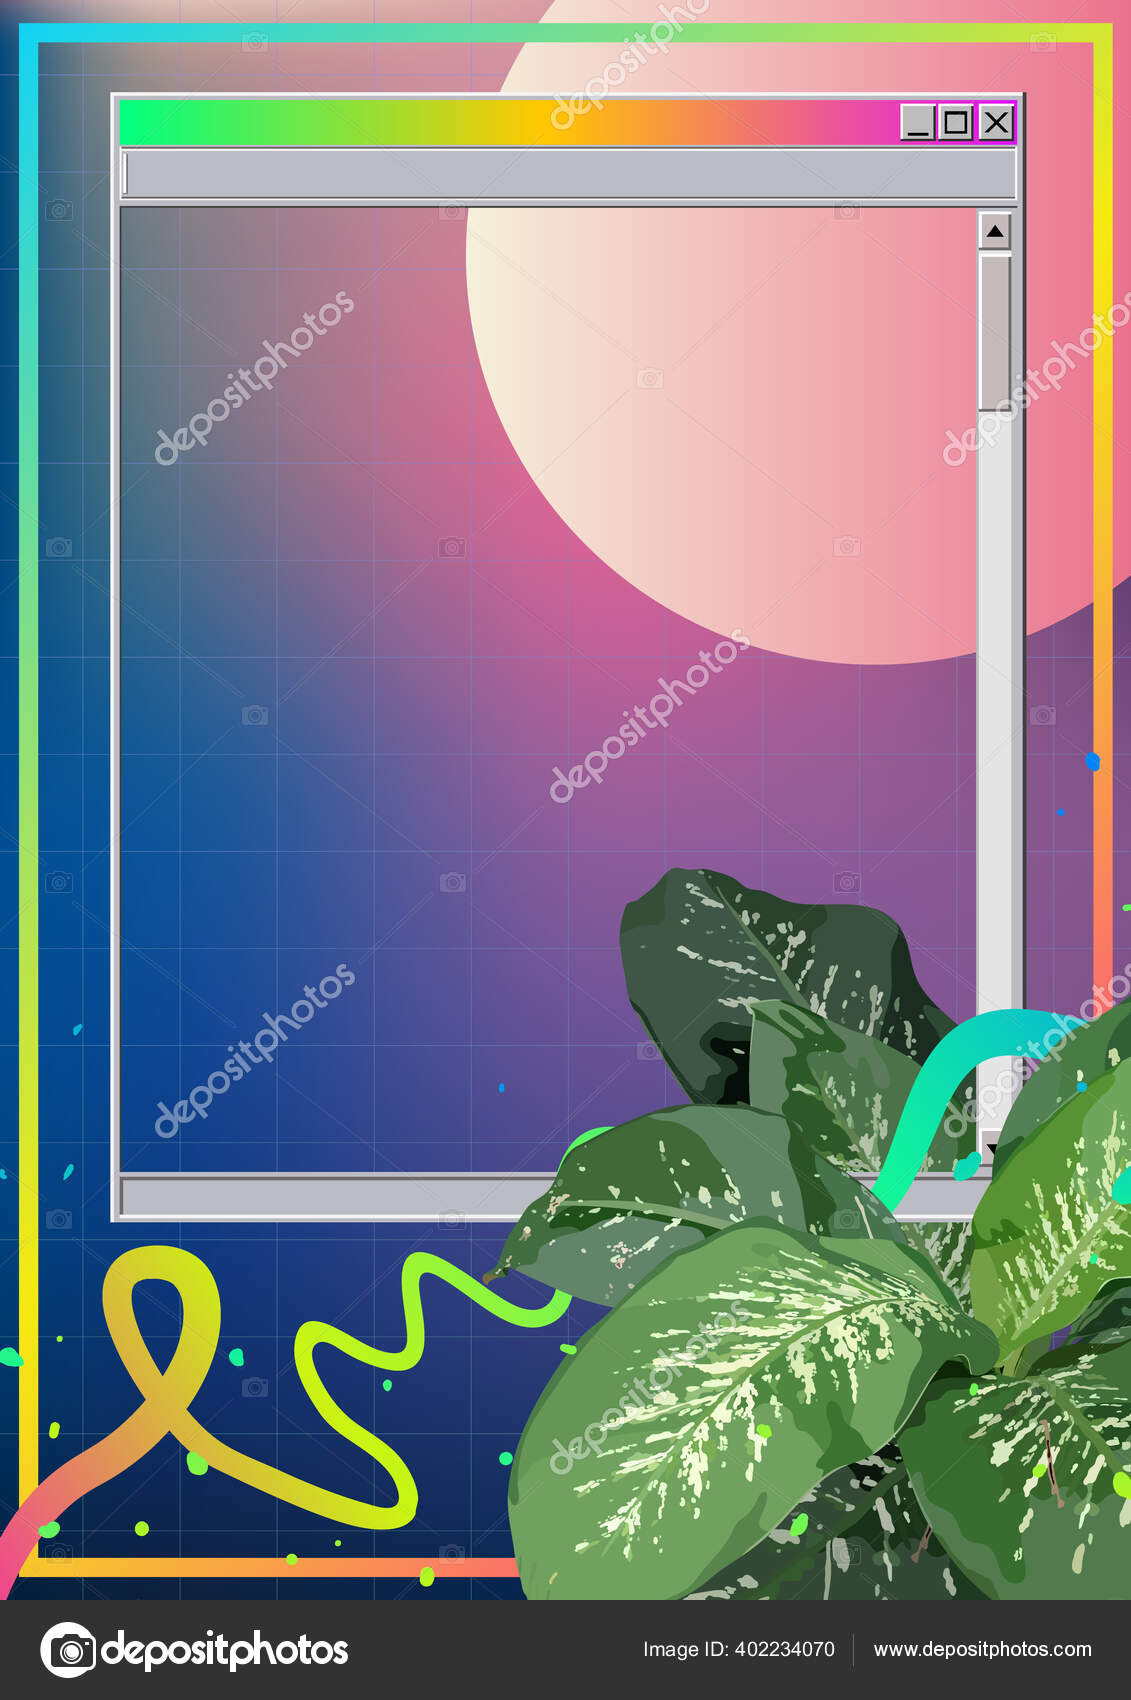 Vintage Retro Aesthetic Tropical Plant Frame Windows Style Neon Element Vector Image By C Summercandy Vector Stock 402234070